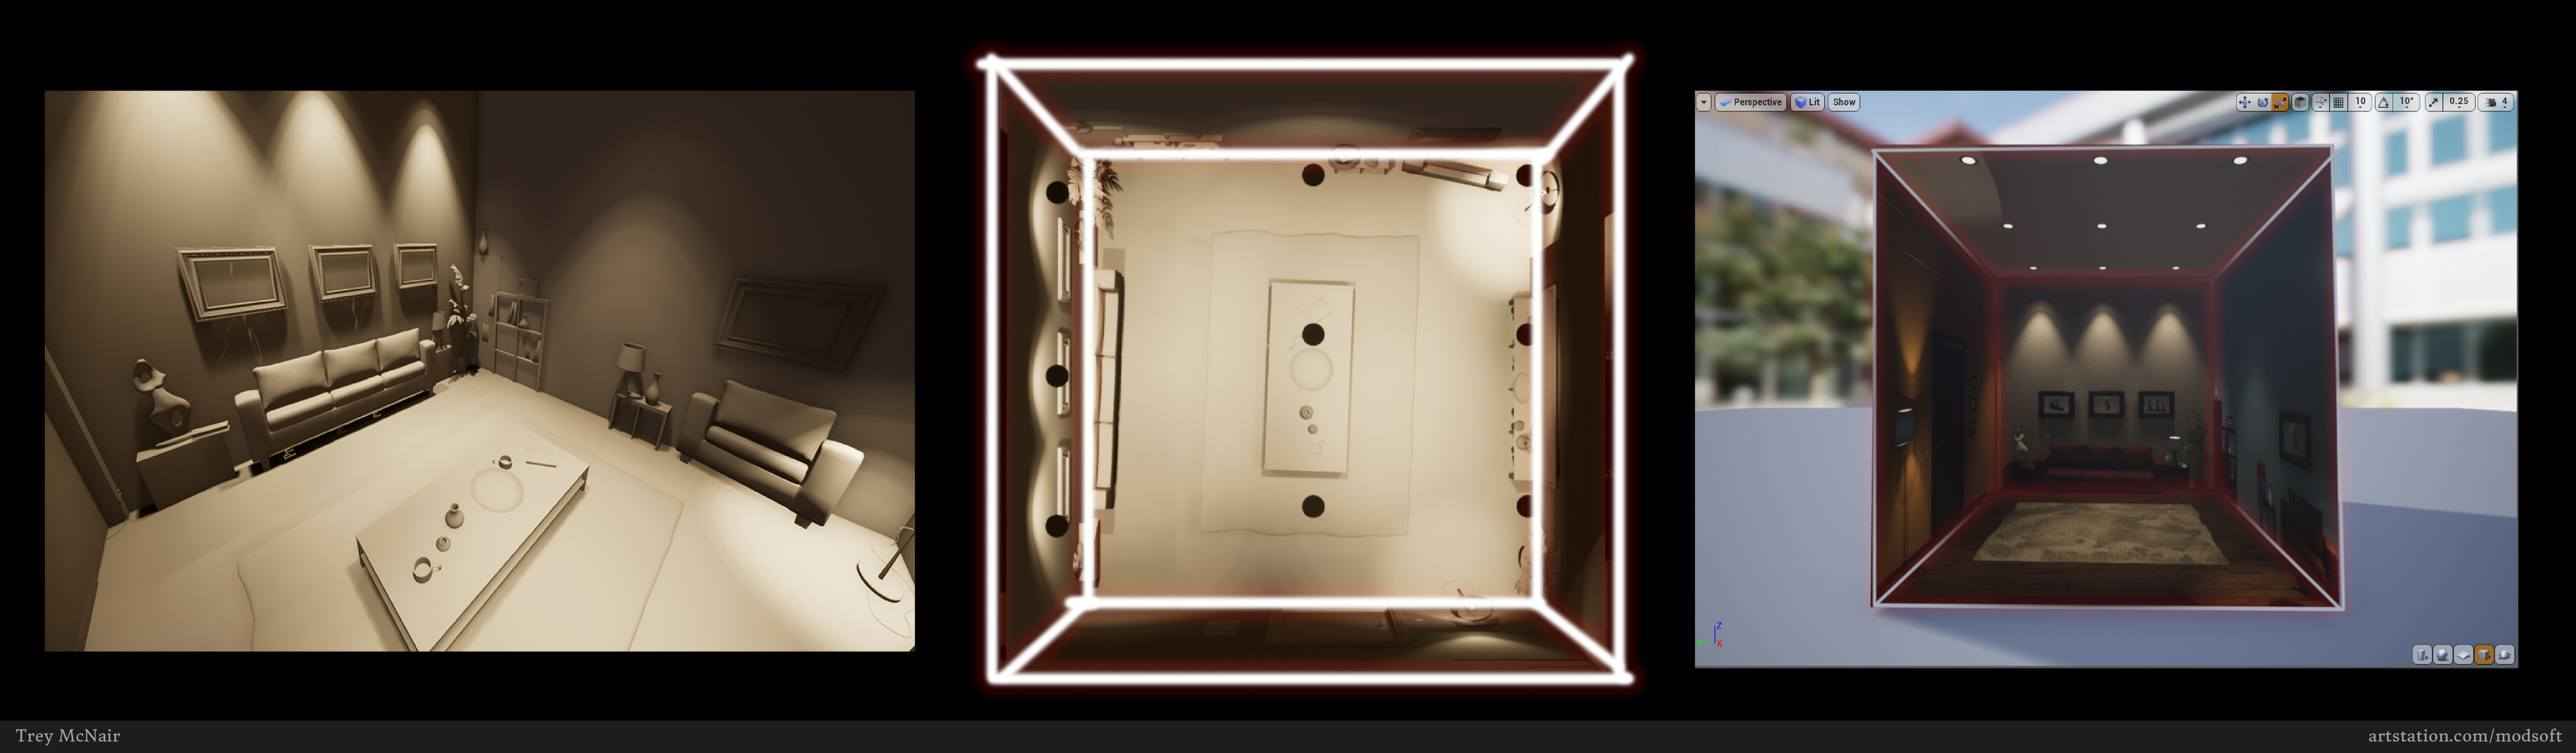 Capture a cubemap in the editor with 'SceneCaptureCube'. Make sure your room is an equal sides cube. Common practice is to scale set dressing against each  wall to not have forms stretched across the room edges in the capture. Capture from room center.